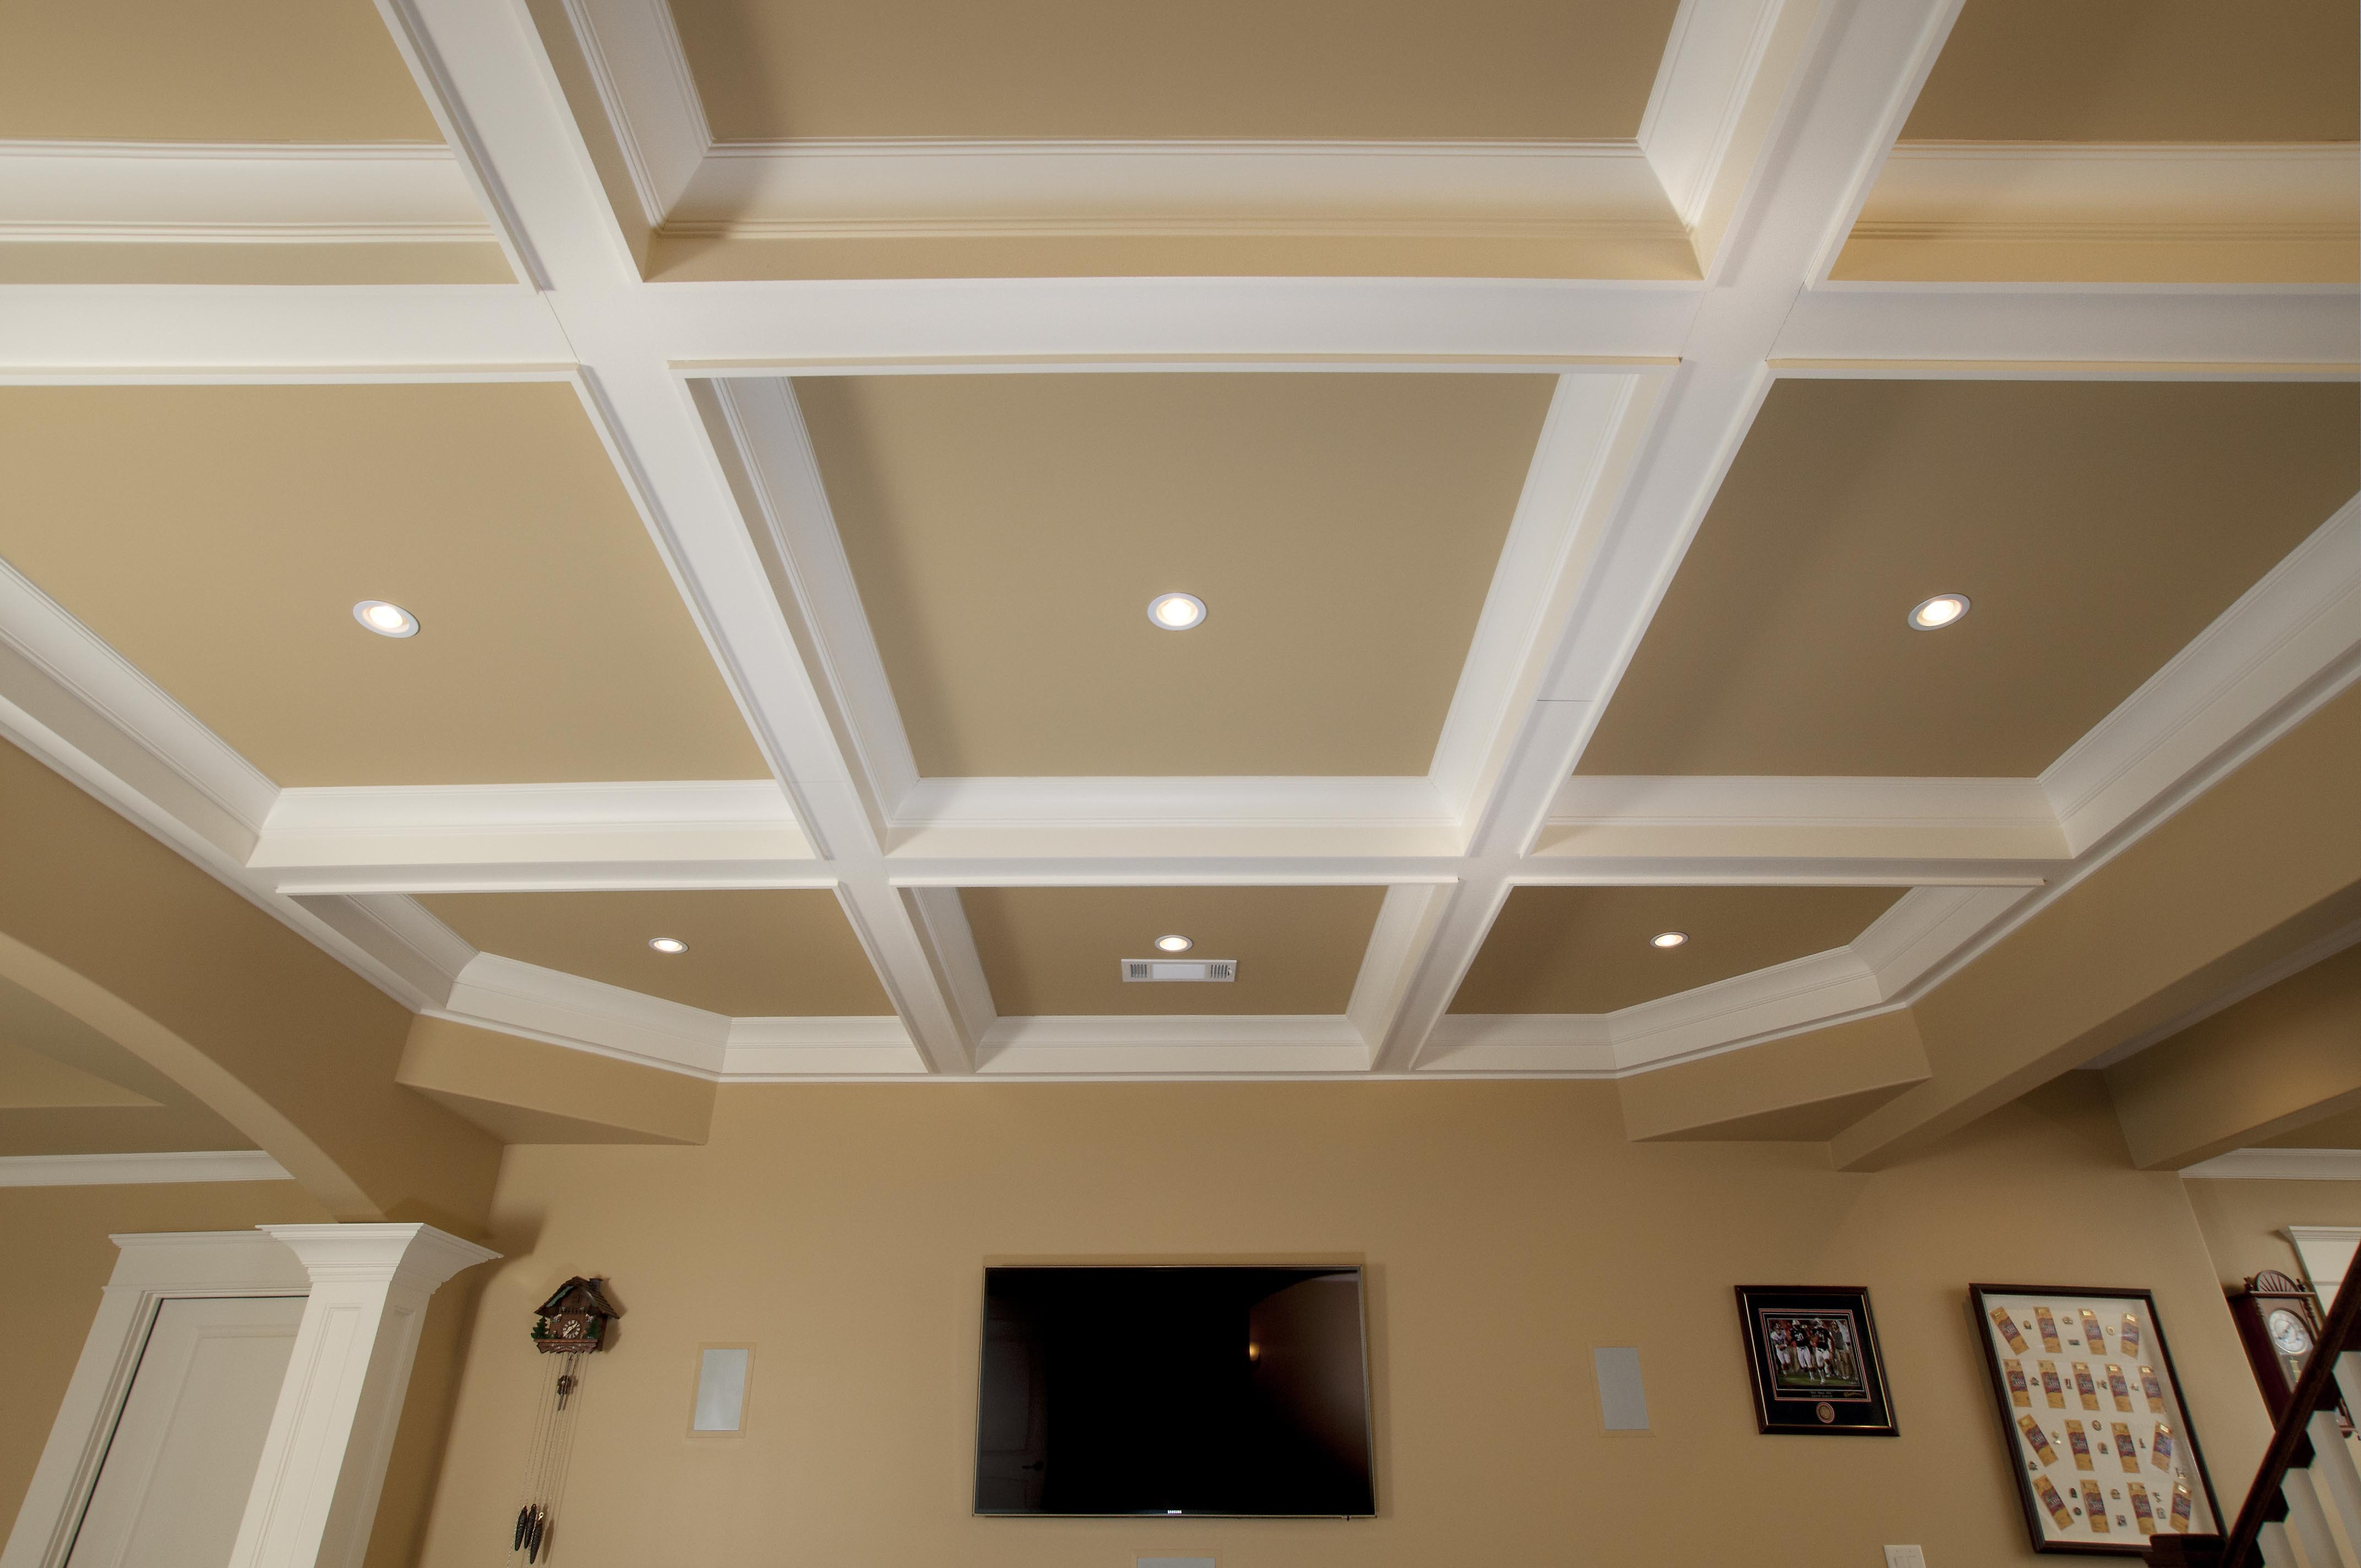 Coffered ceiling install how to install coffered ceiling tiles wwwenergywardennet dailygadgetfo Image collections